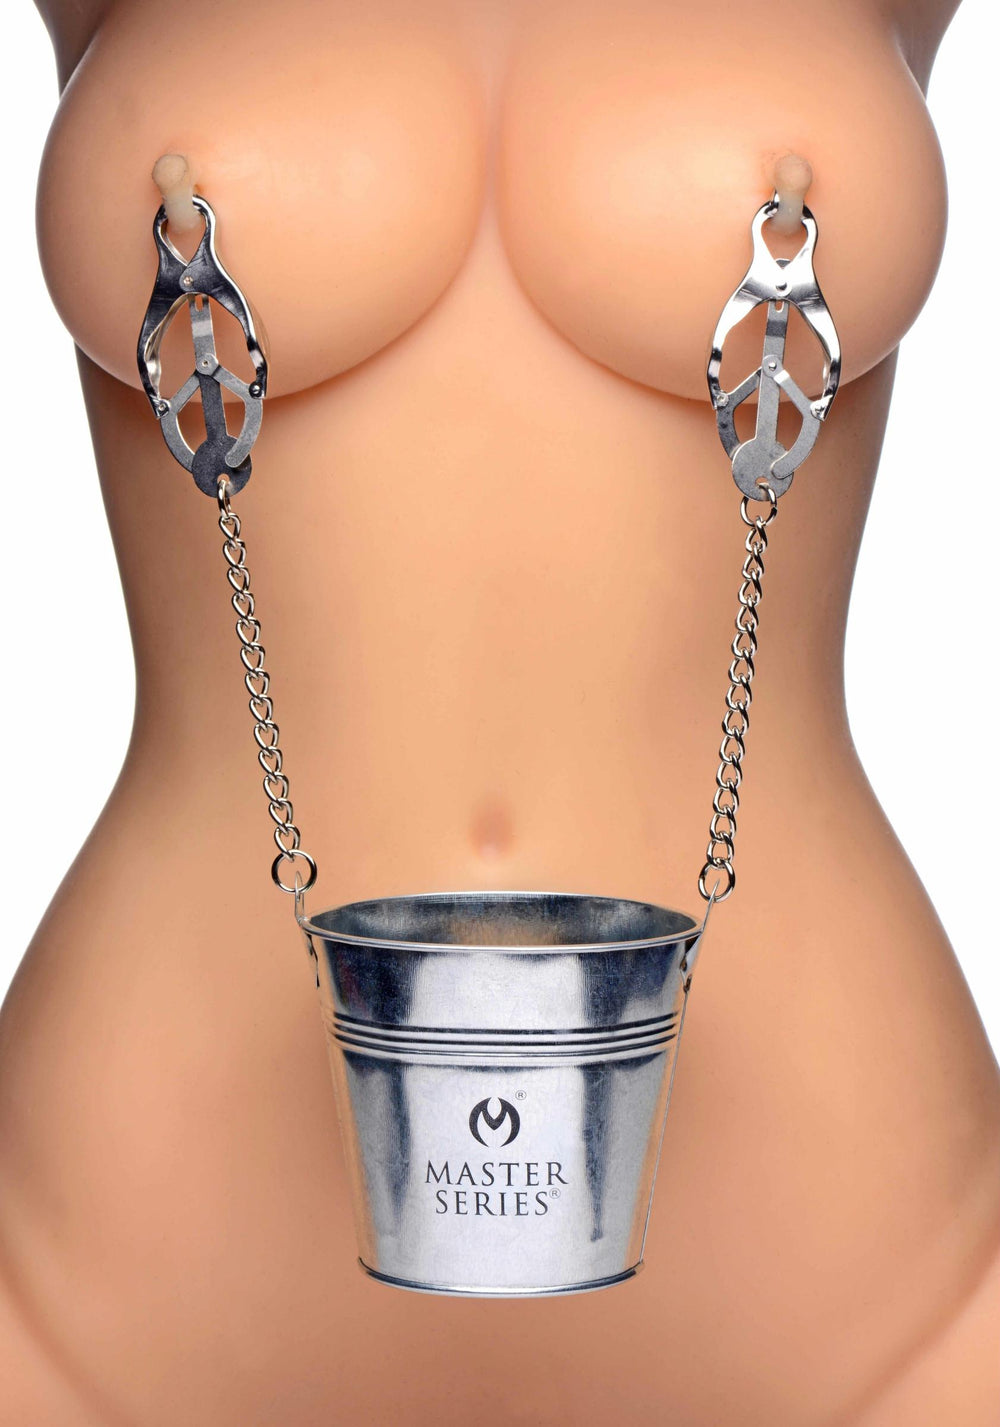 Slave Bucket Labia and Nipple Clamps - Fun and Kinky Sex Toys